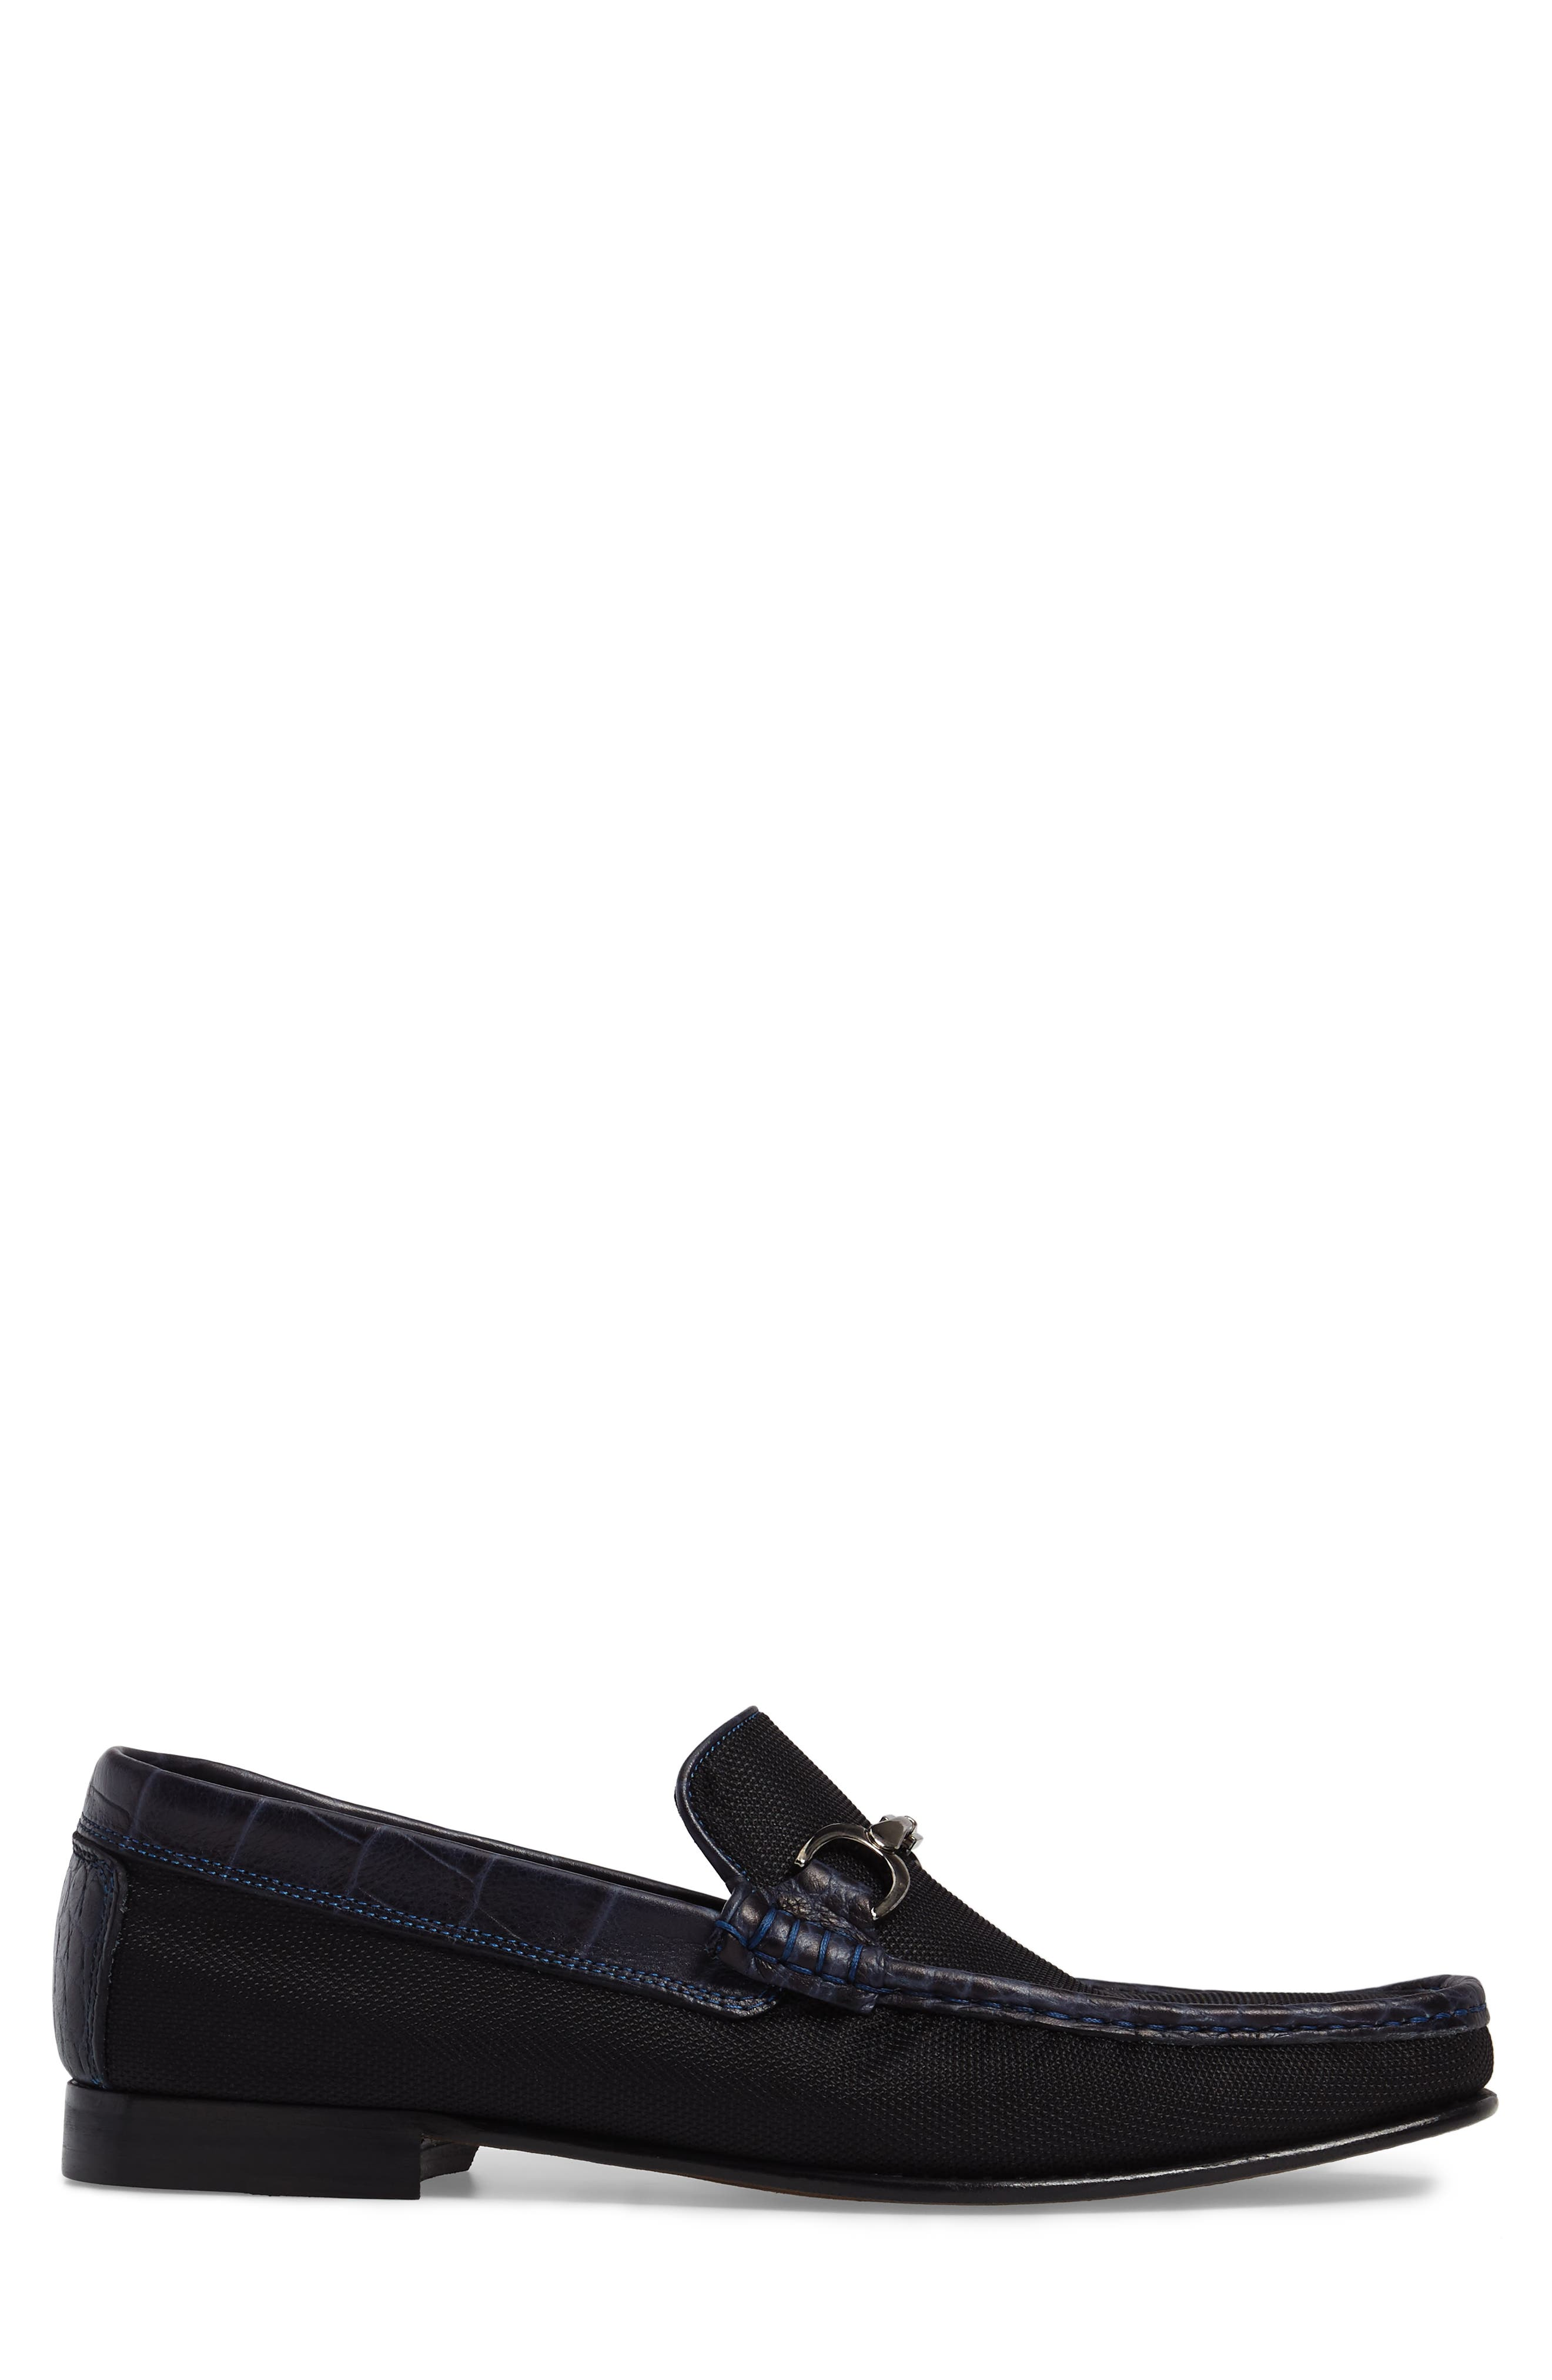 Alternate Image 3  - Donald J Pliner Darrin Embossed Loafer (Men)